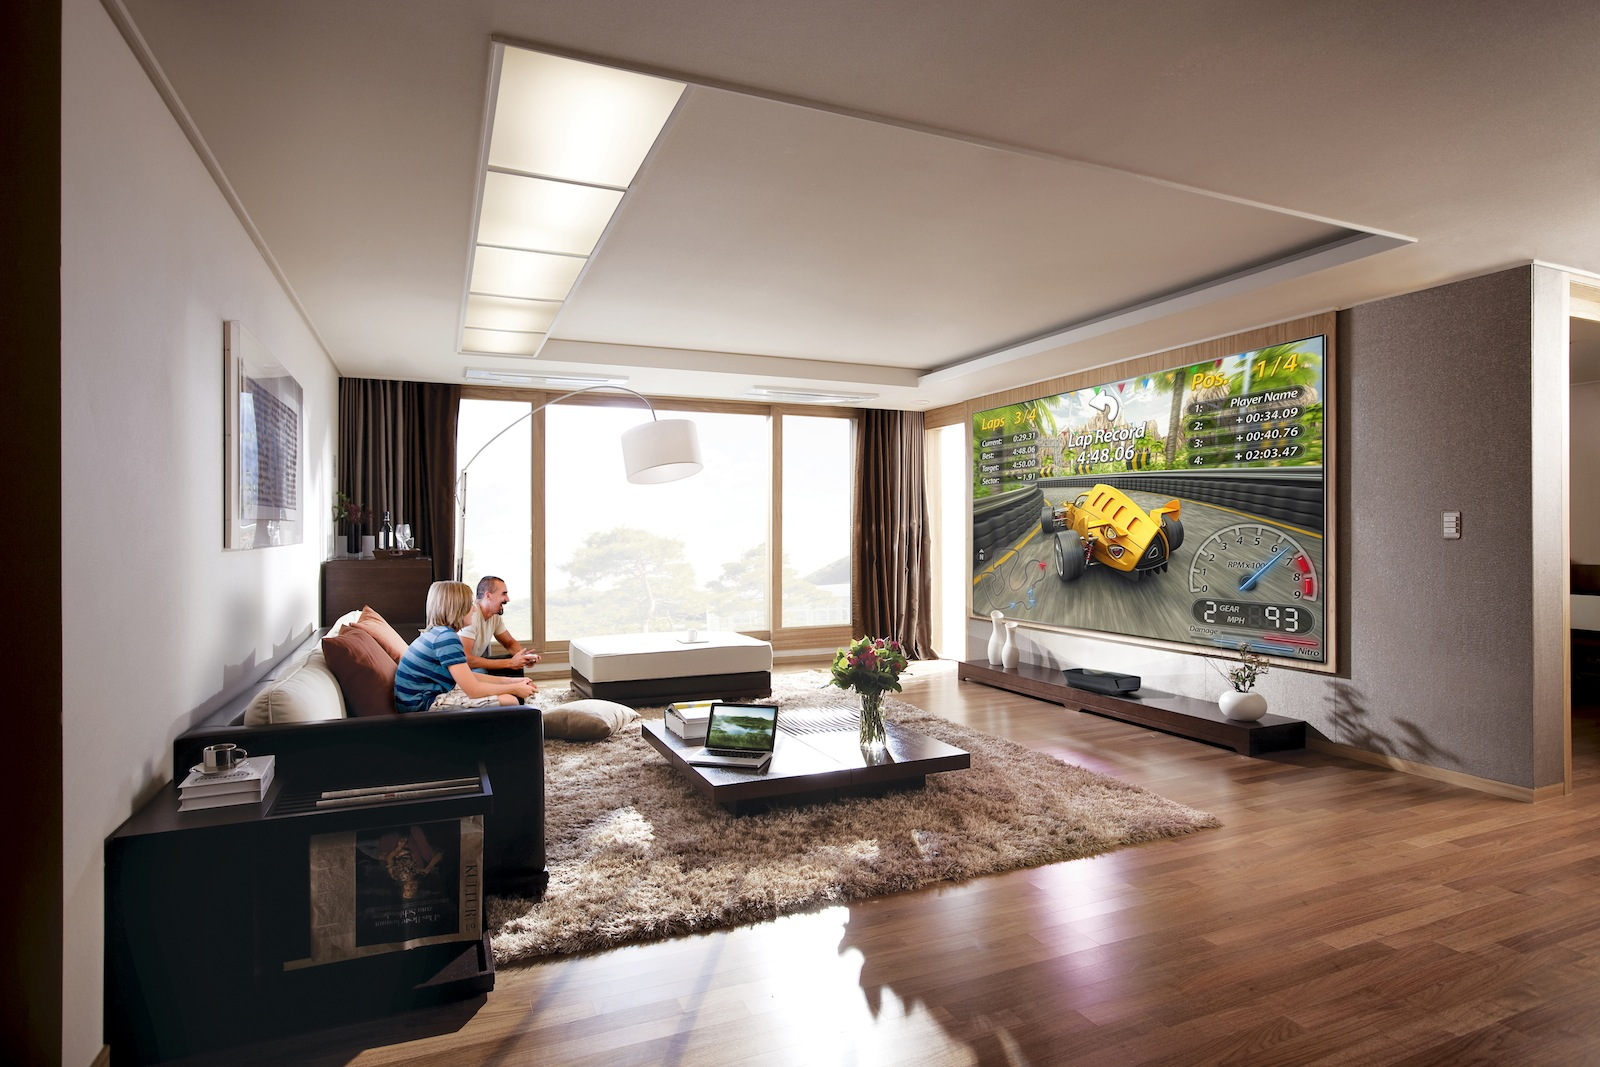 lg-smart-tv-hecto-game-sponsored